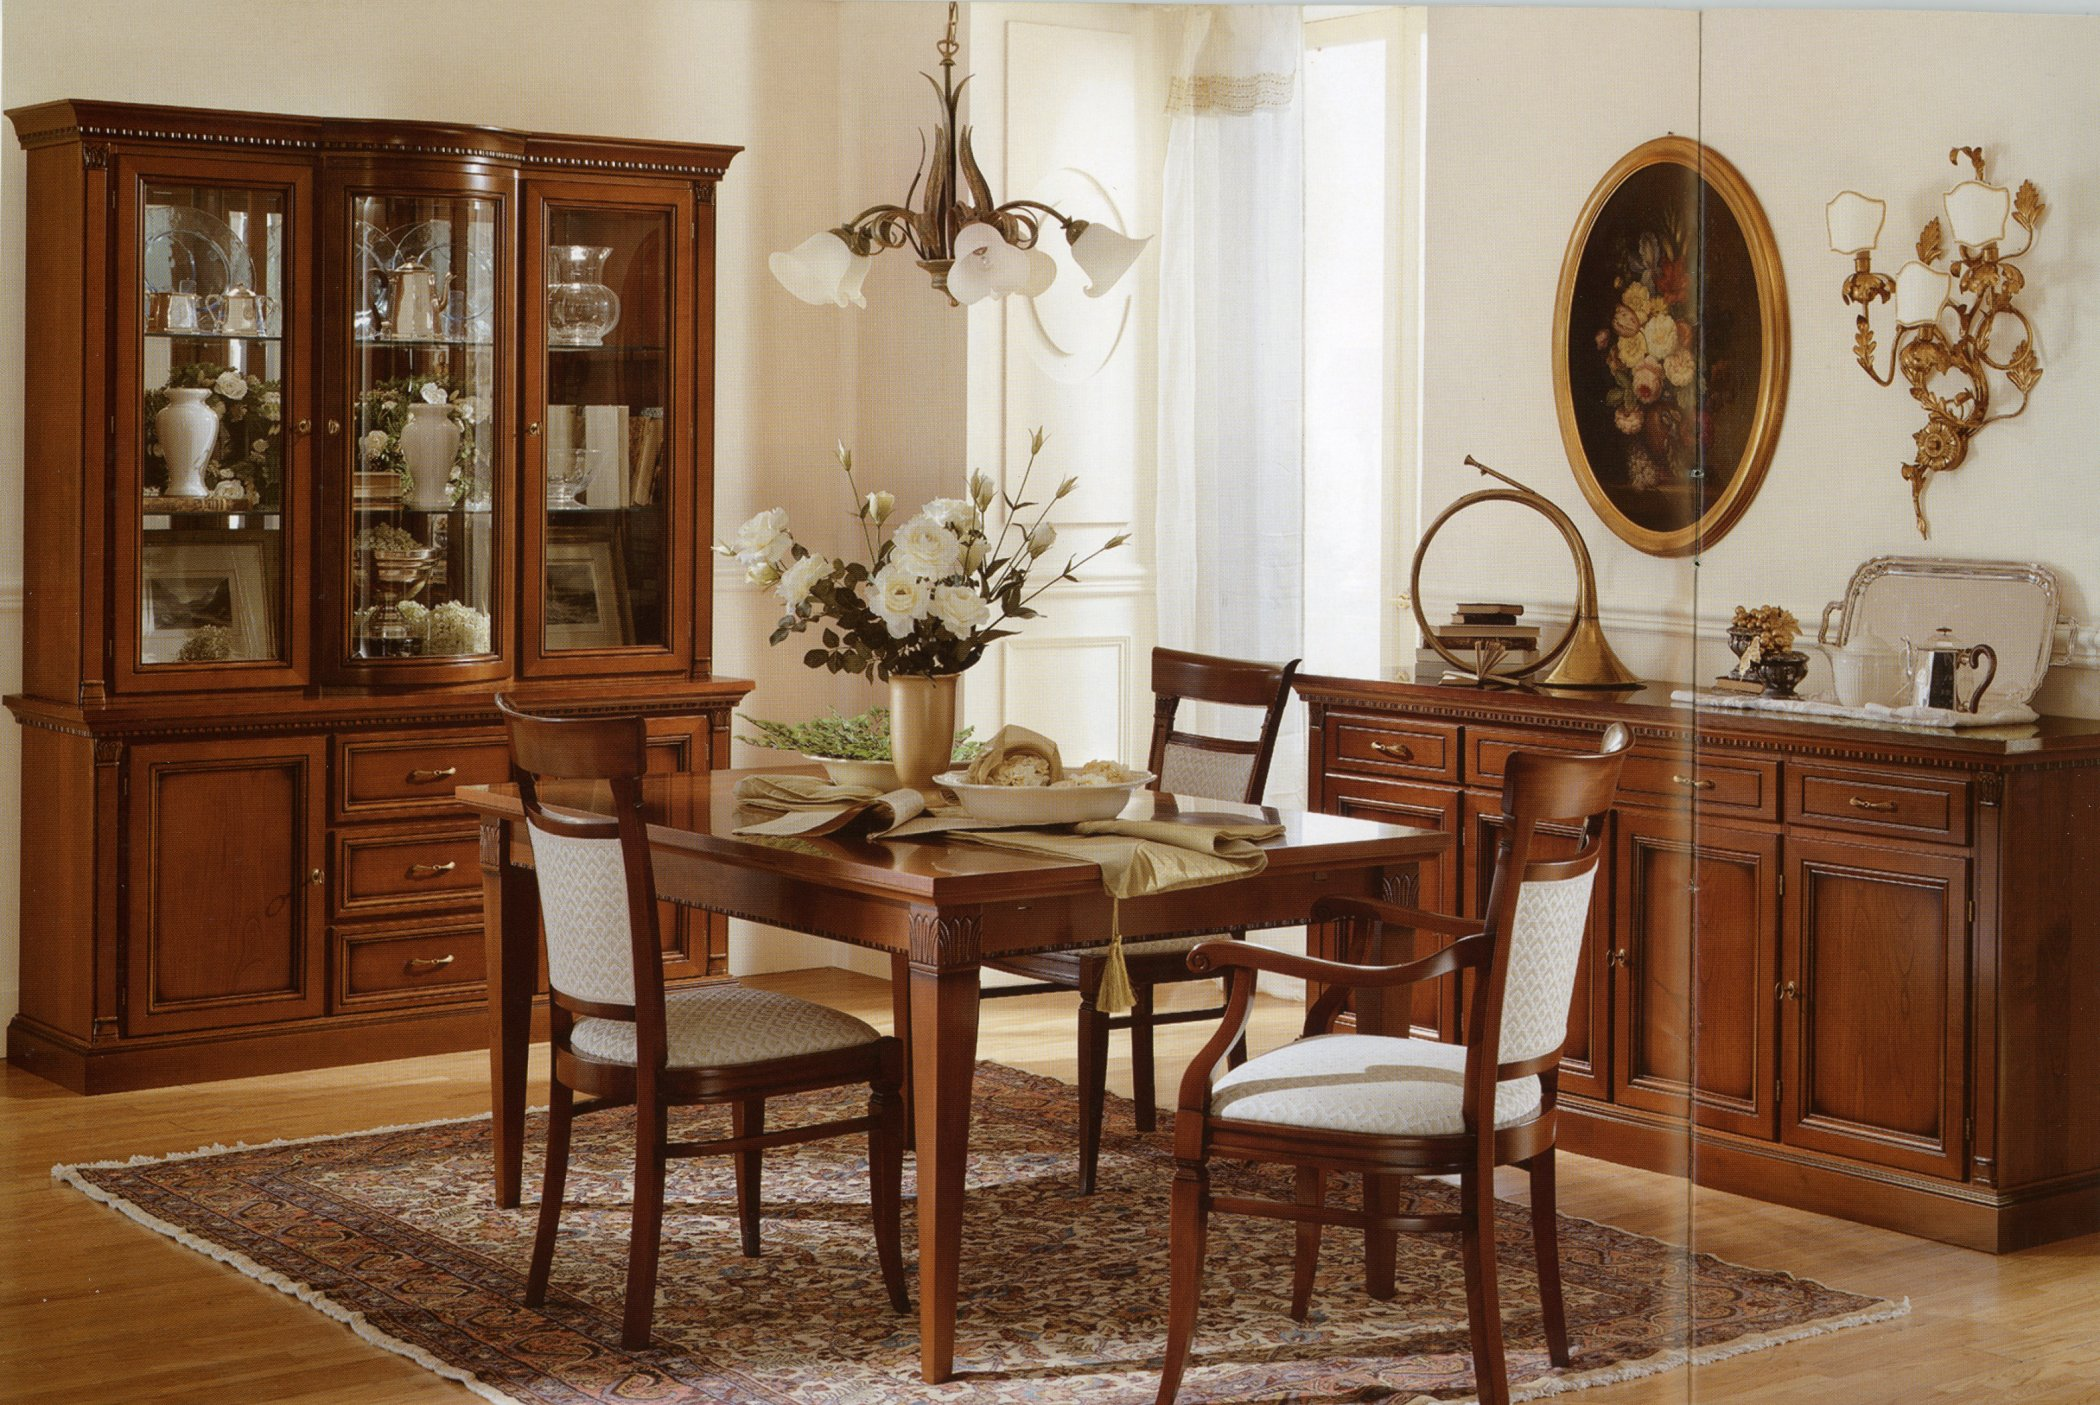 Dining Room Sets With Accessories On Table And Col Chandelier